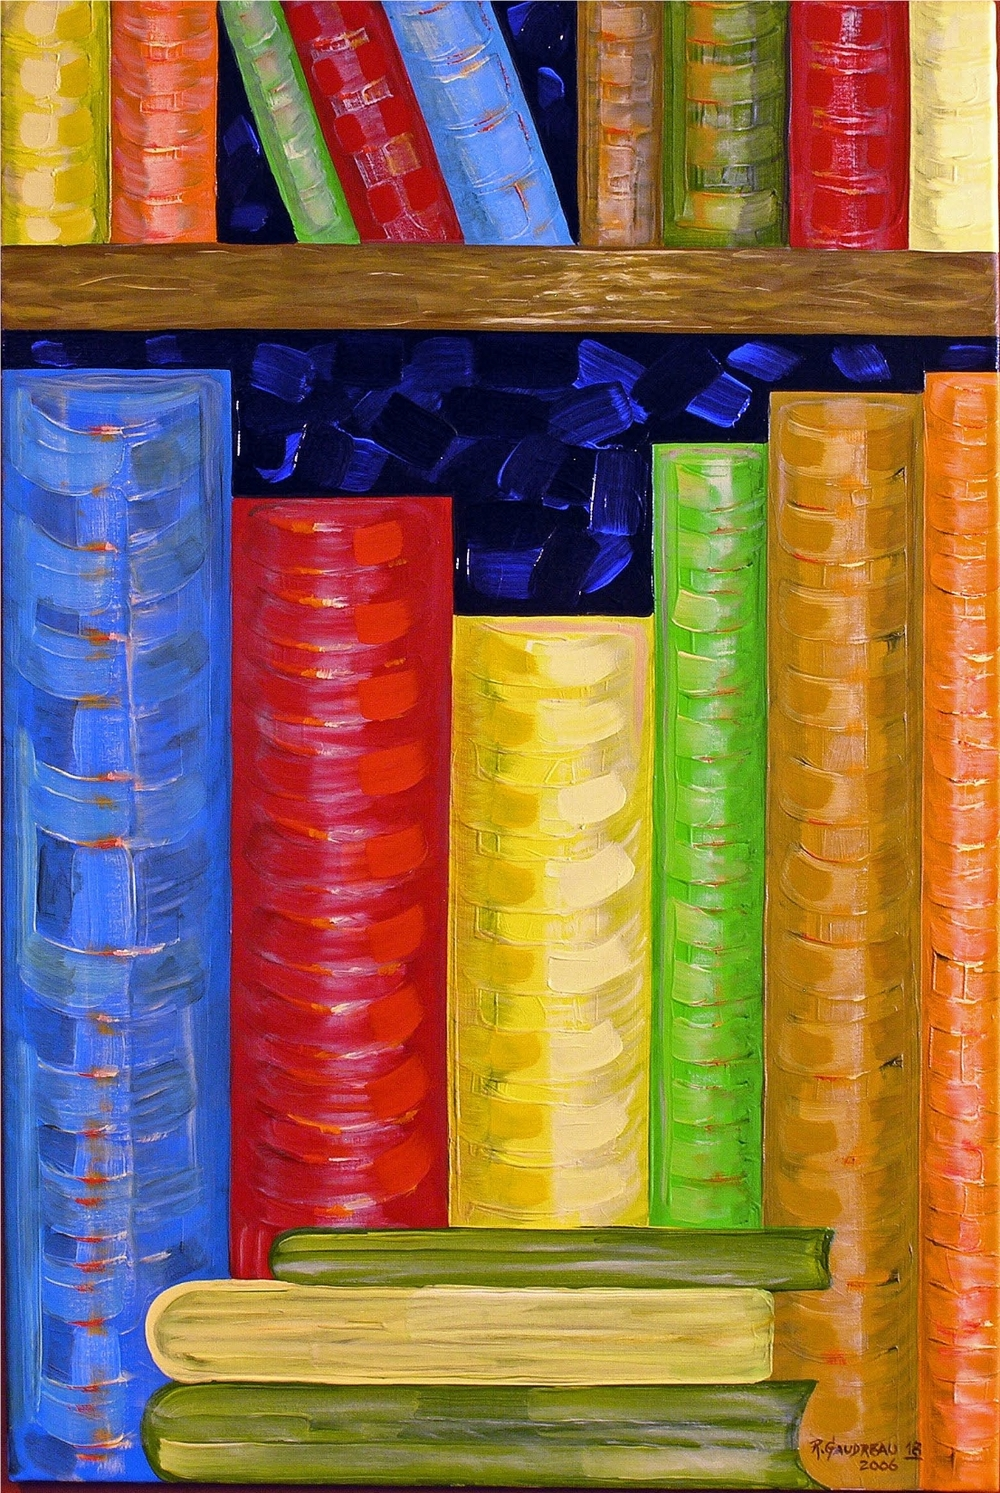 18  Books 2006 oil on canvas 36 x 24 inches